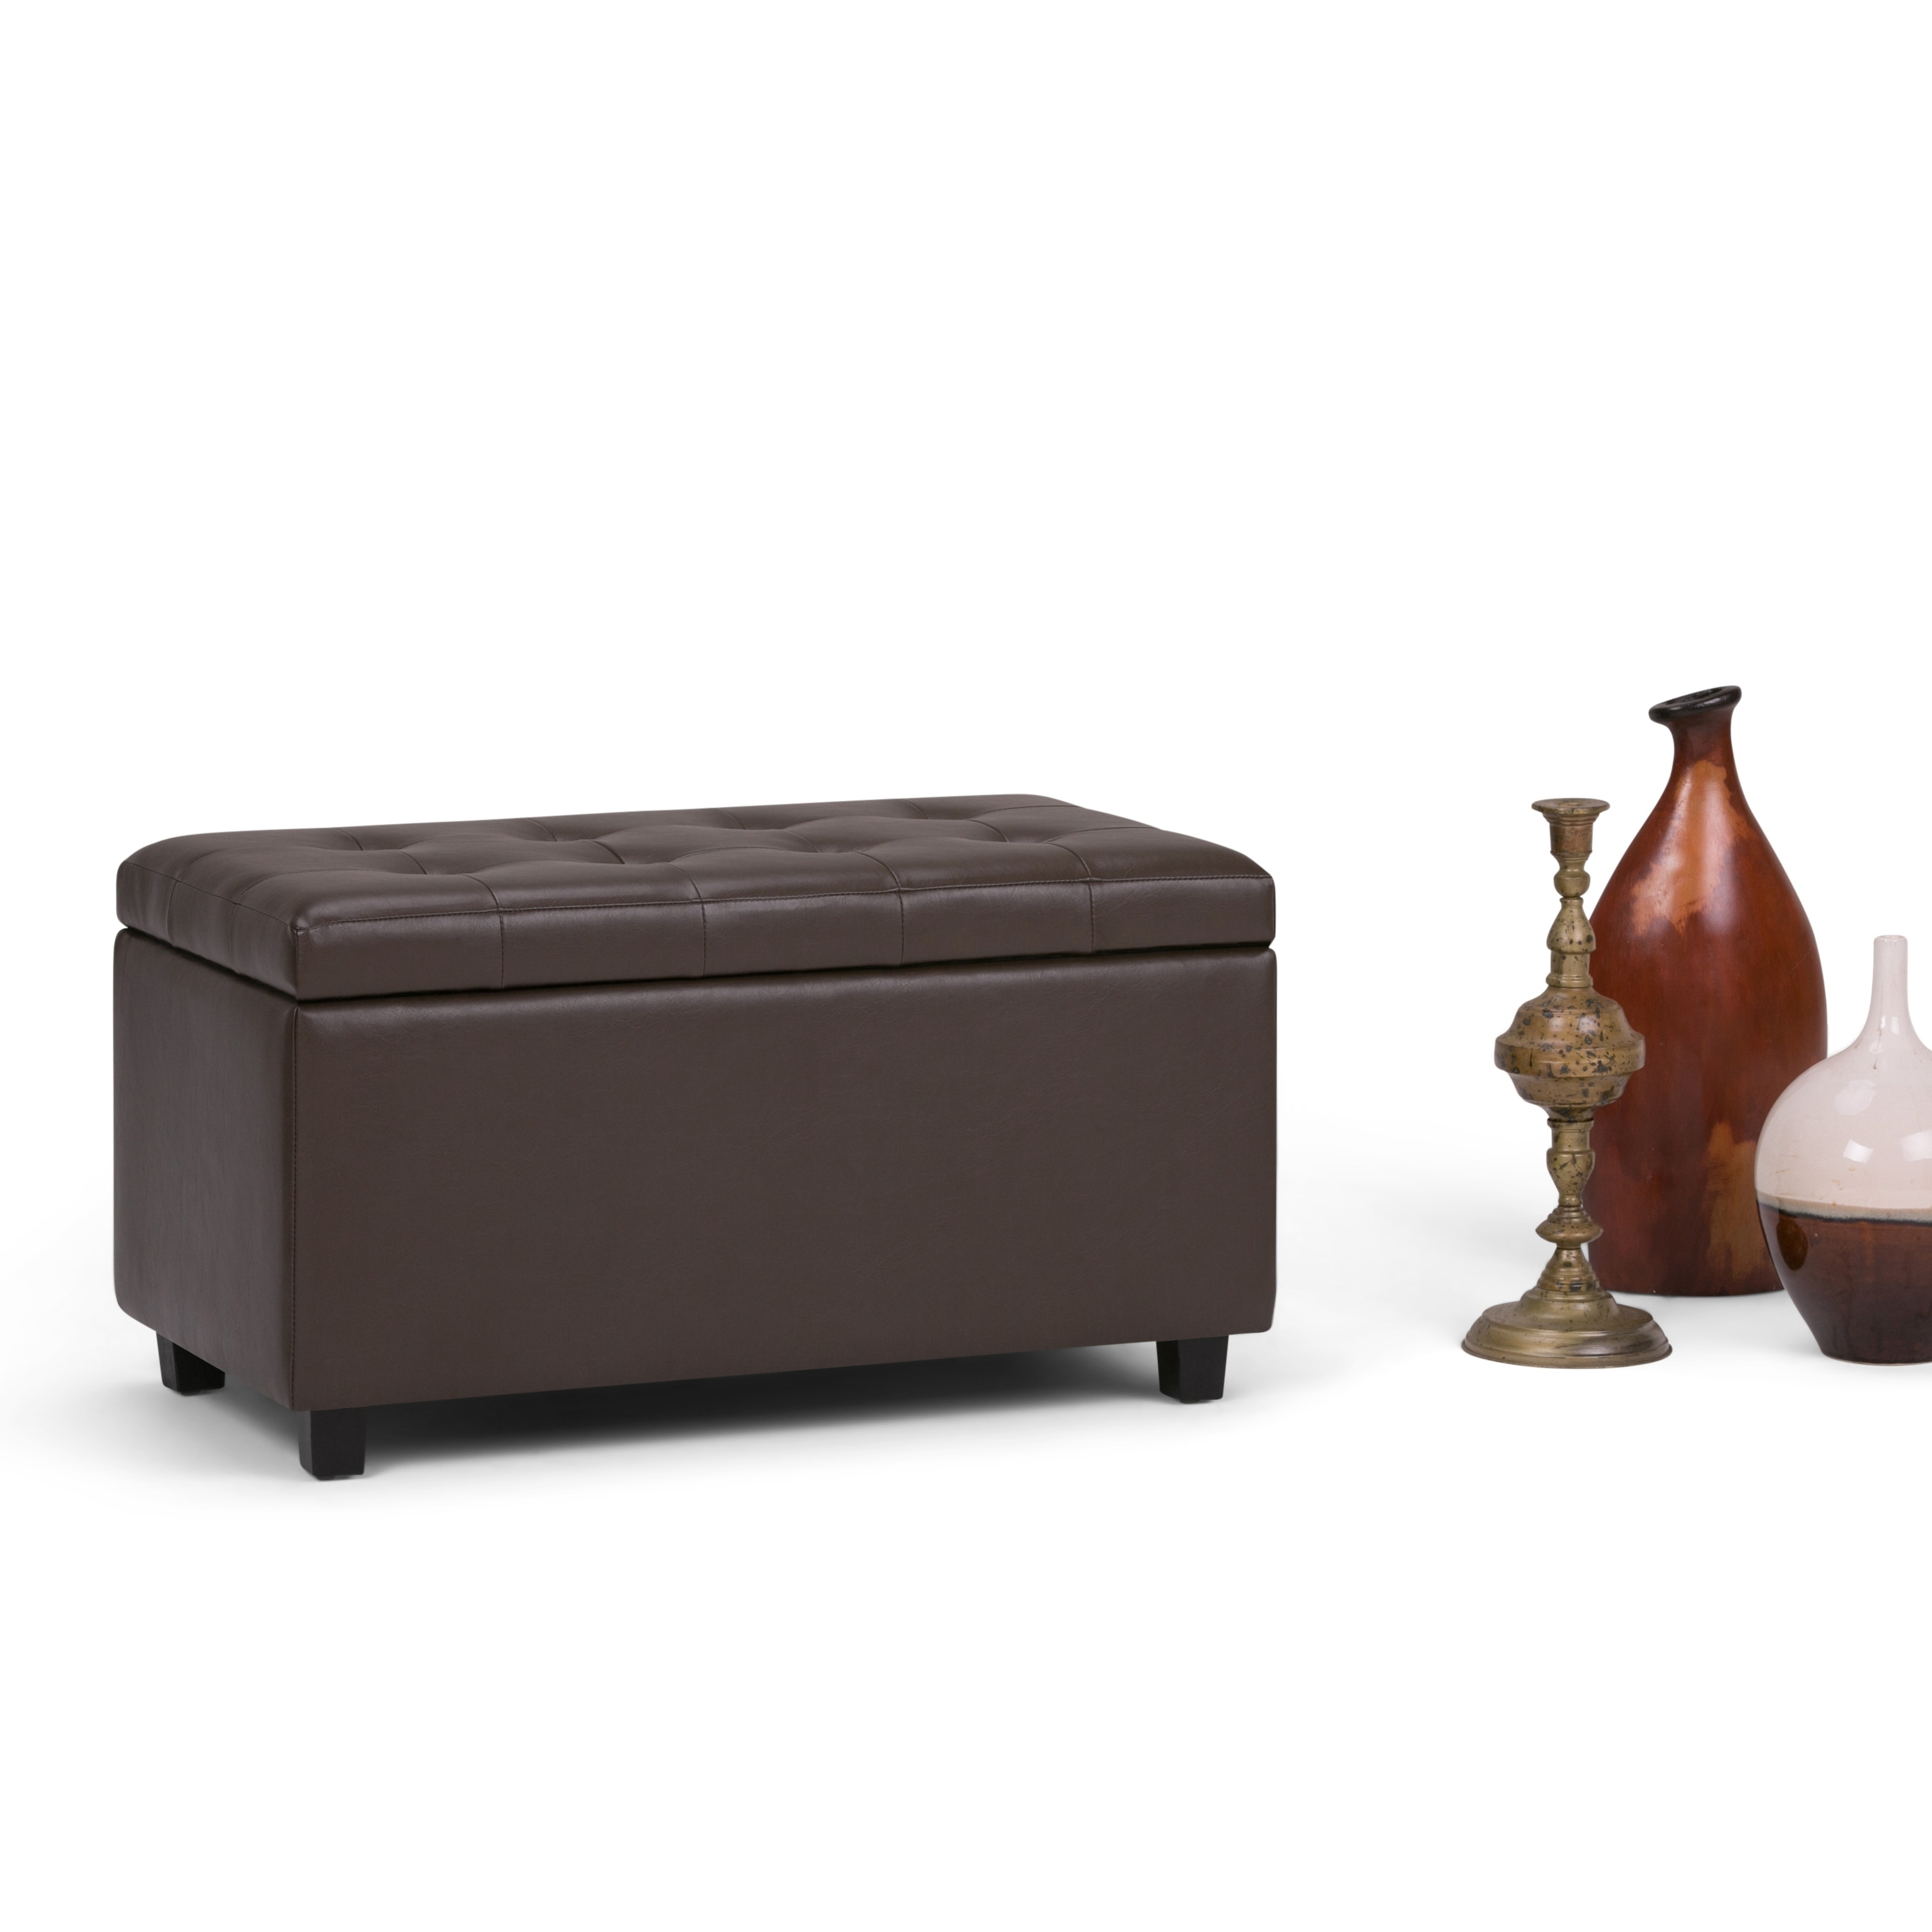 Ordinaire Shop WYNDENHALL Essex Faux Leather Storage Ottoman Bench   On Sale   Free  Shipping Today   Overstock.com   6727554